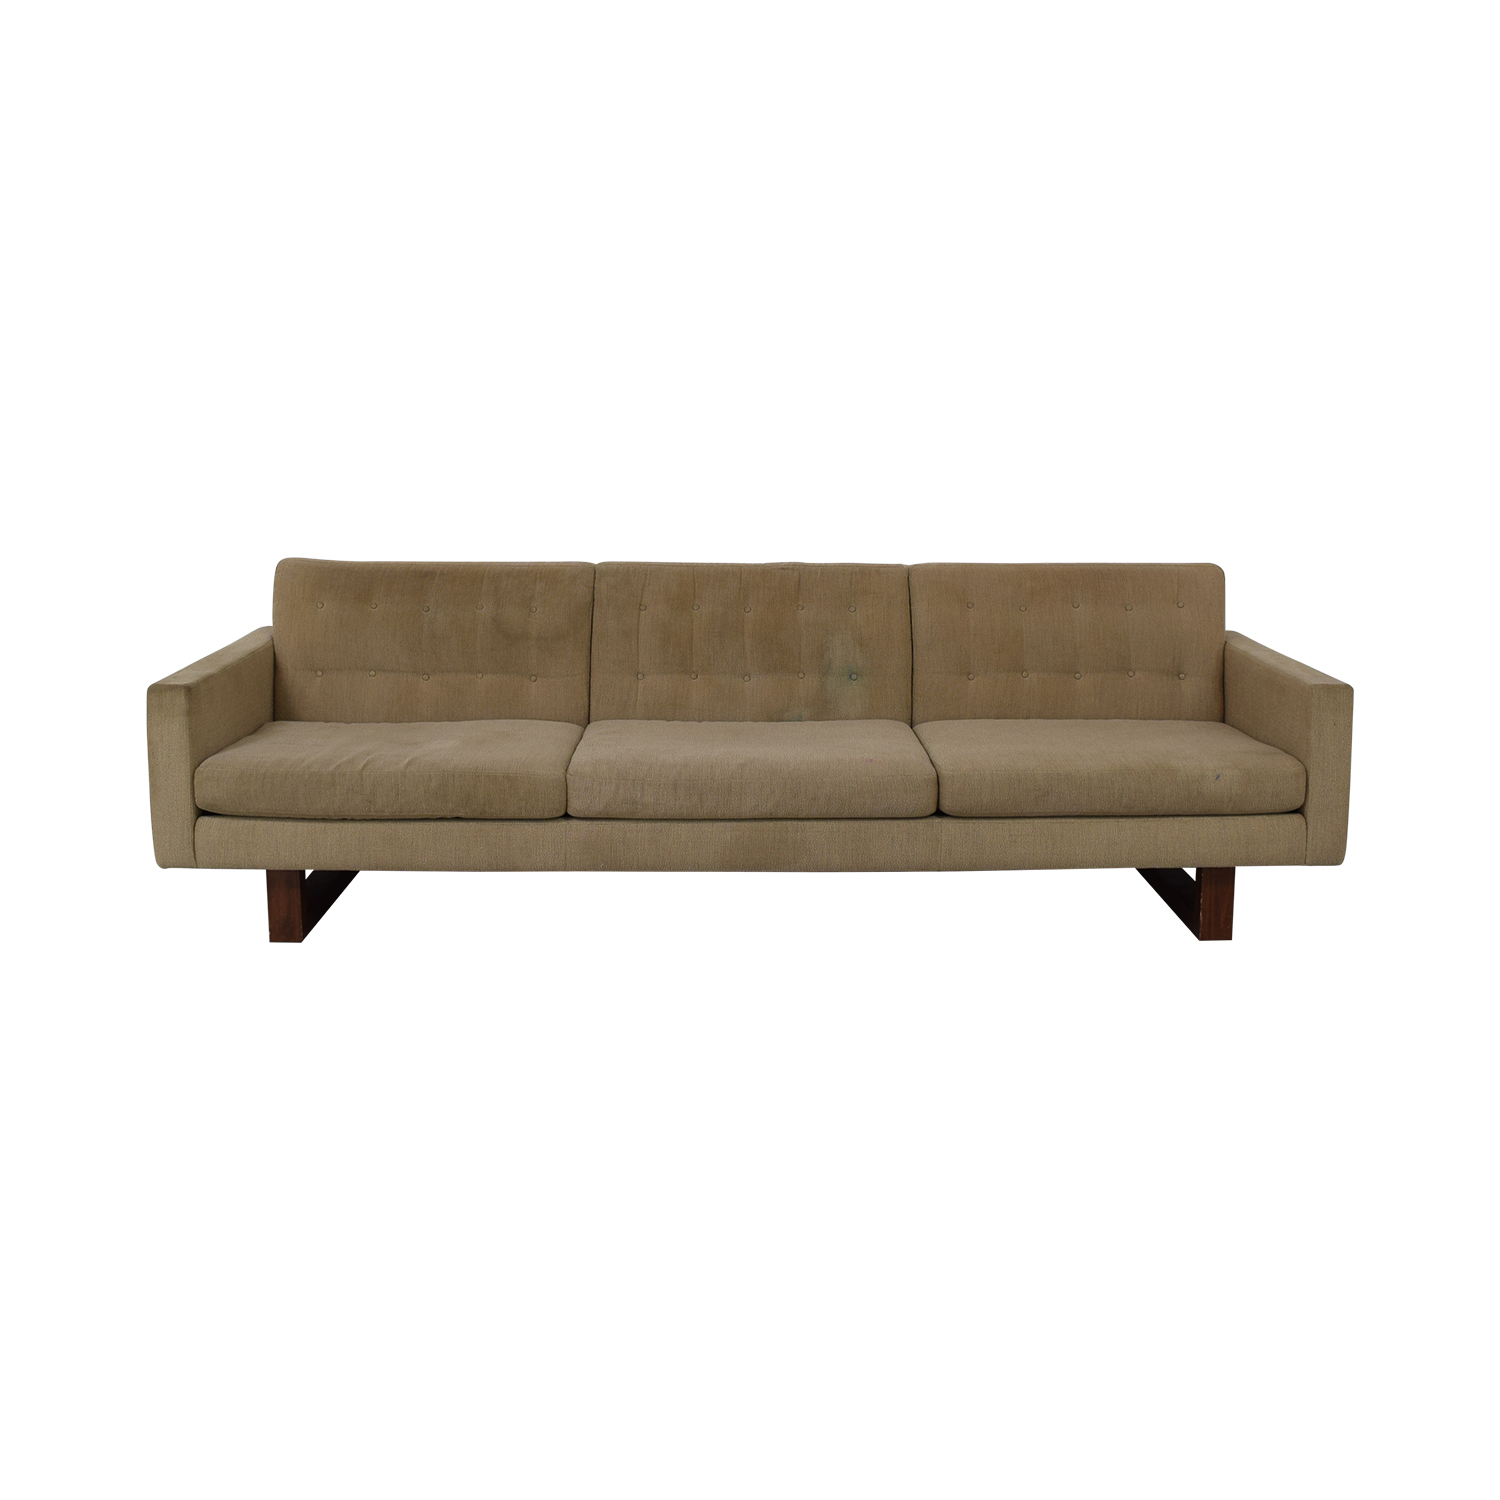 Room & Board Room & Board Tan Tufted Three-Cushion Sofa tan